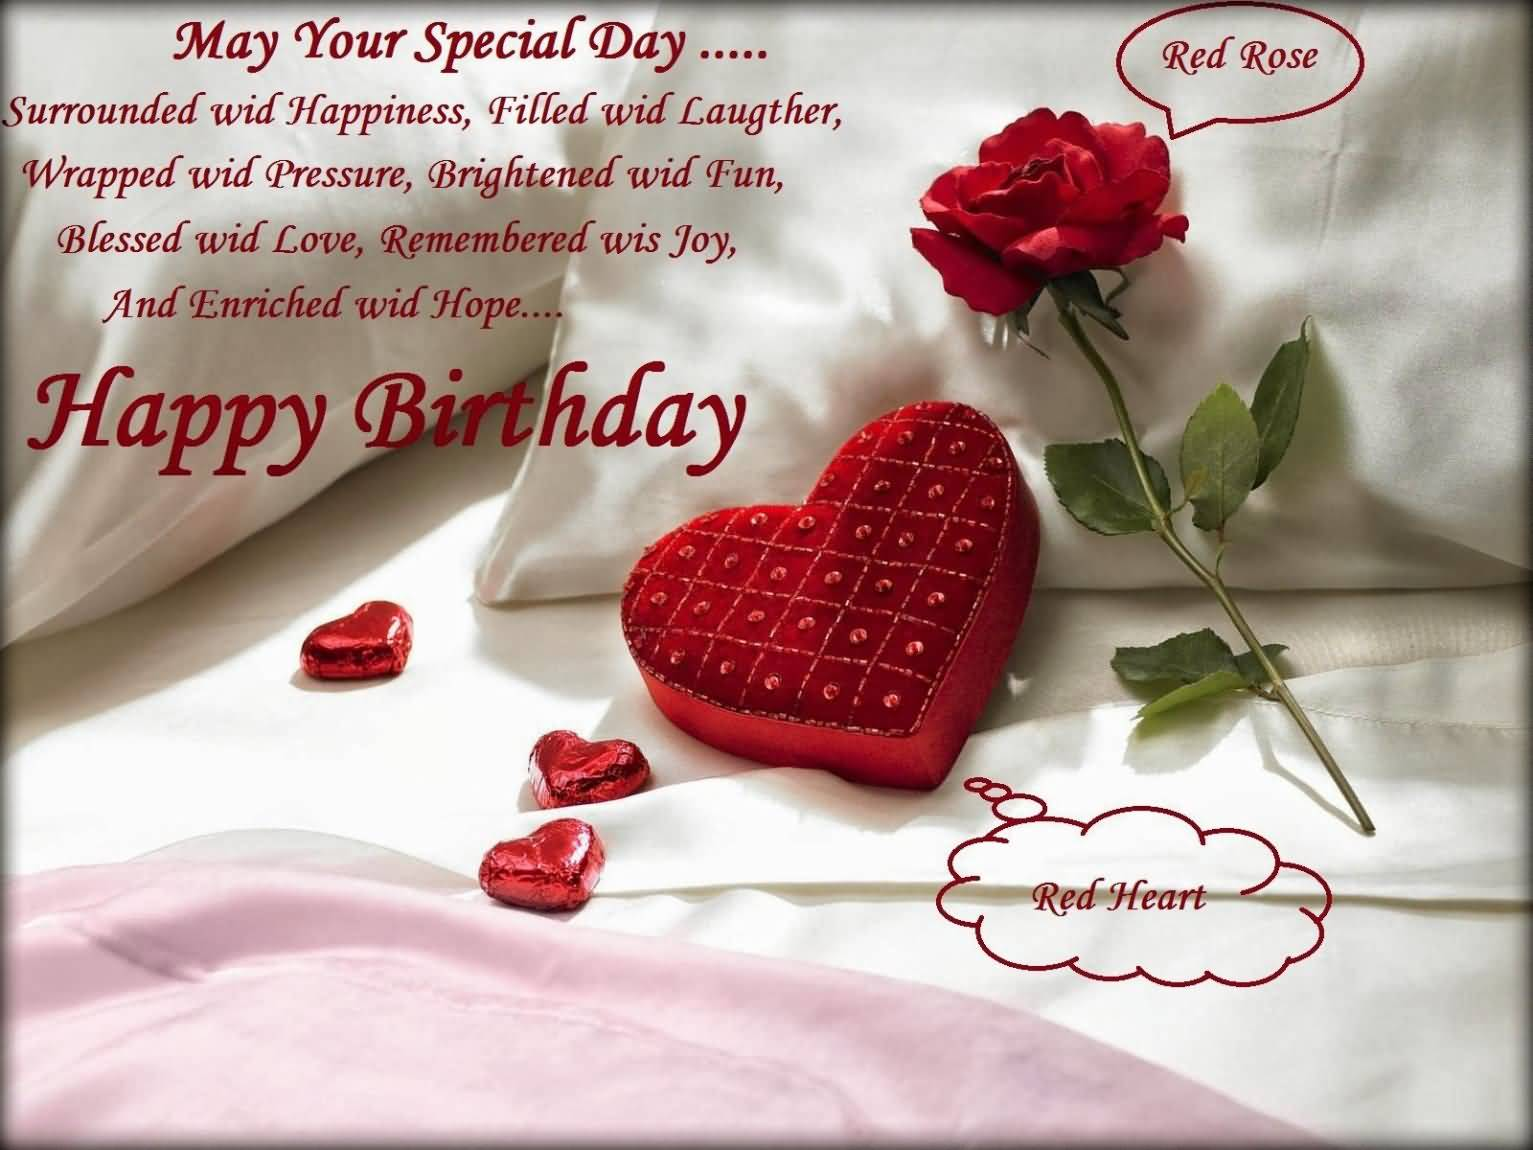 Happy Birthday Wishes For Husband Images Free Download May Your Special Day...